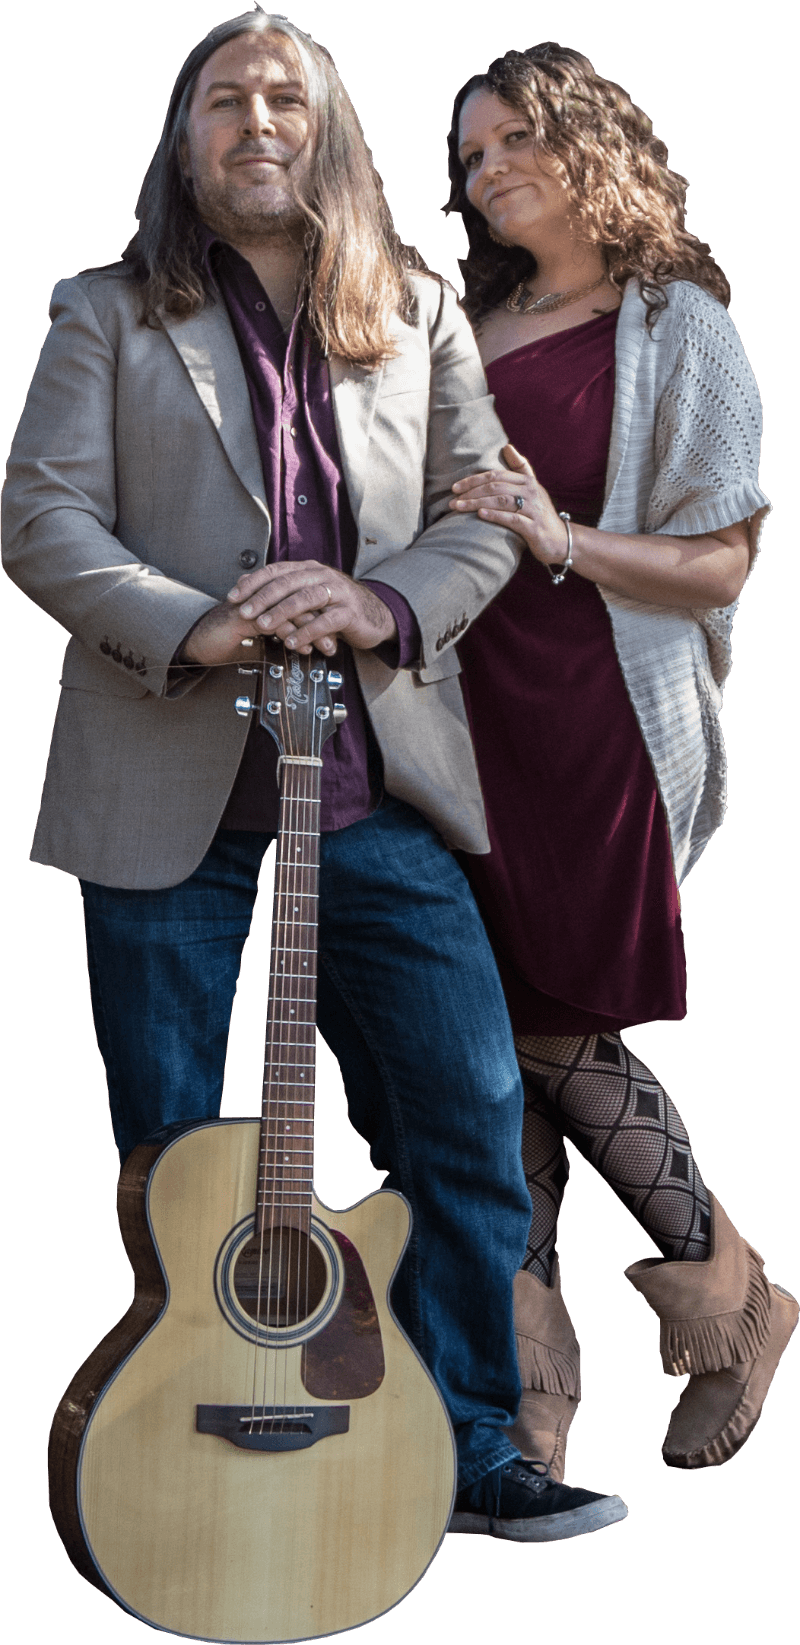 Zonnis musical duo